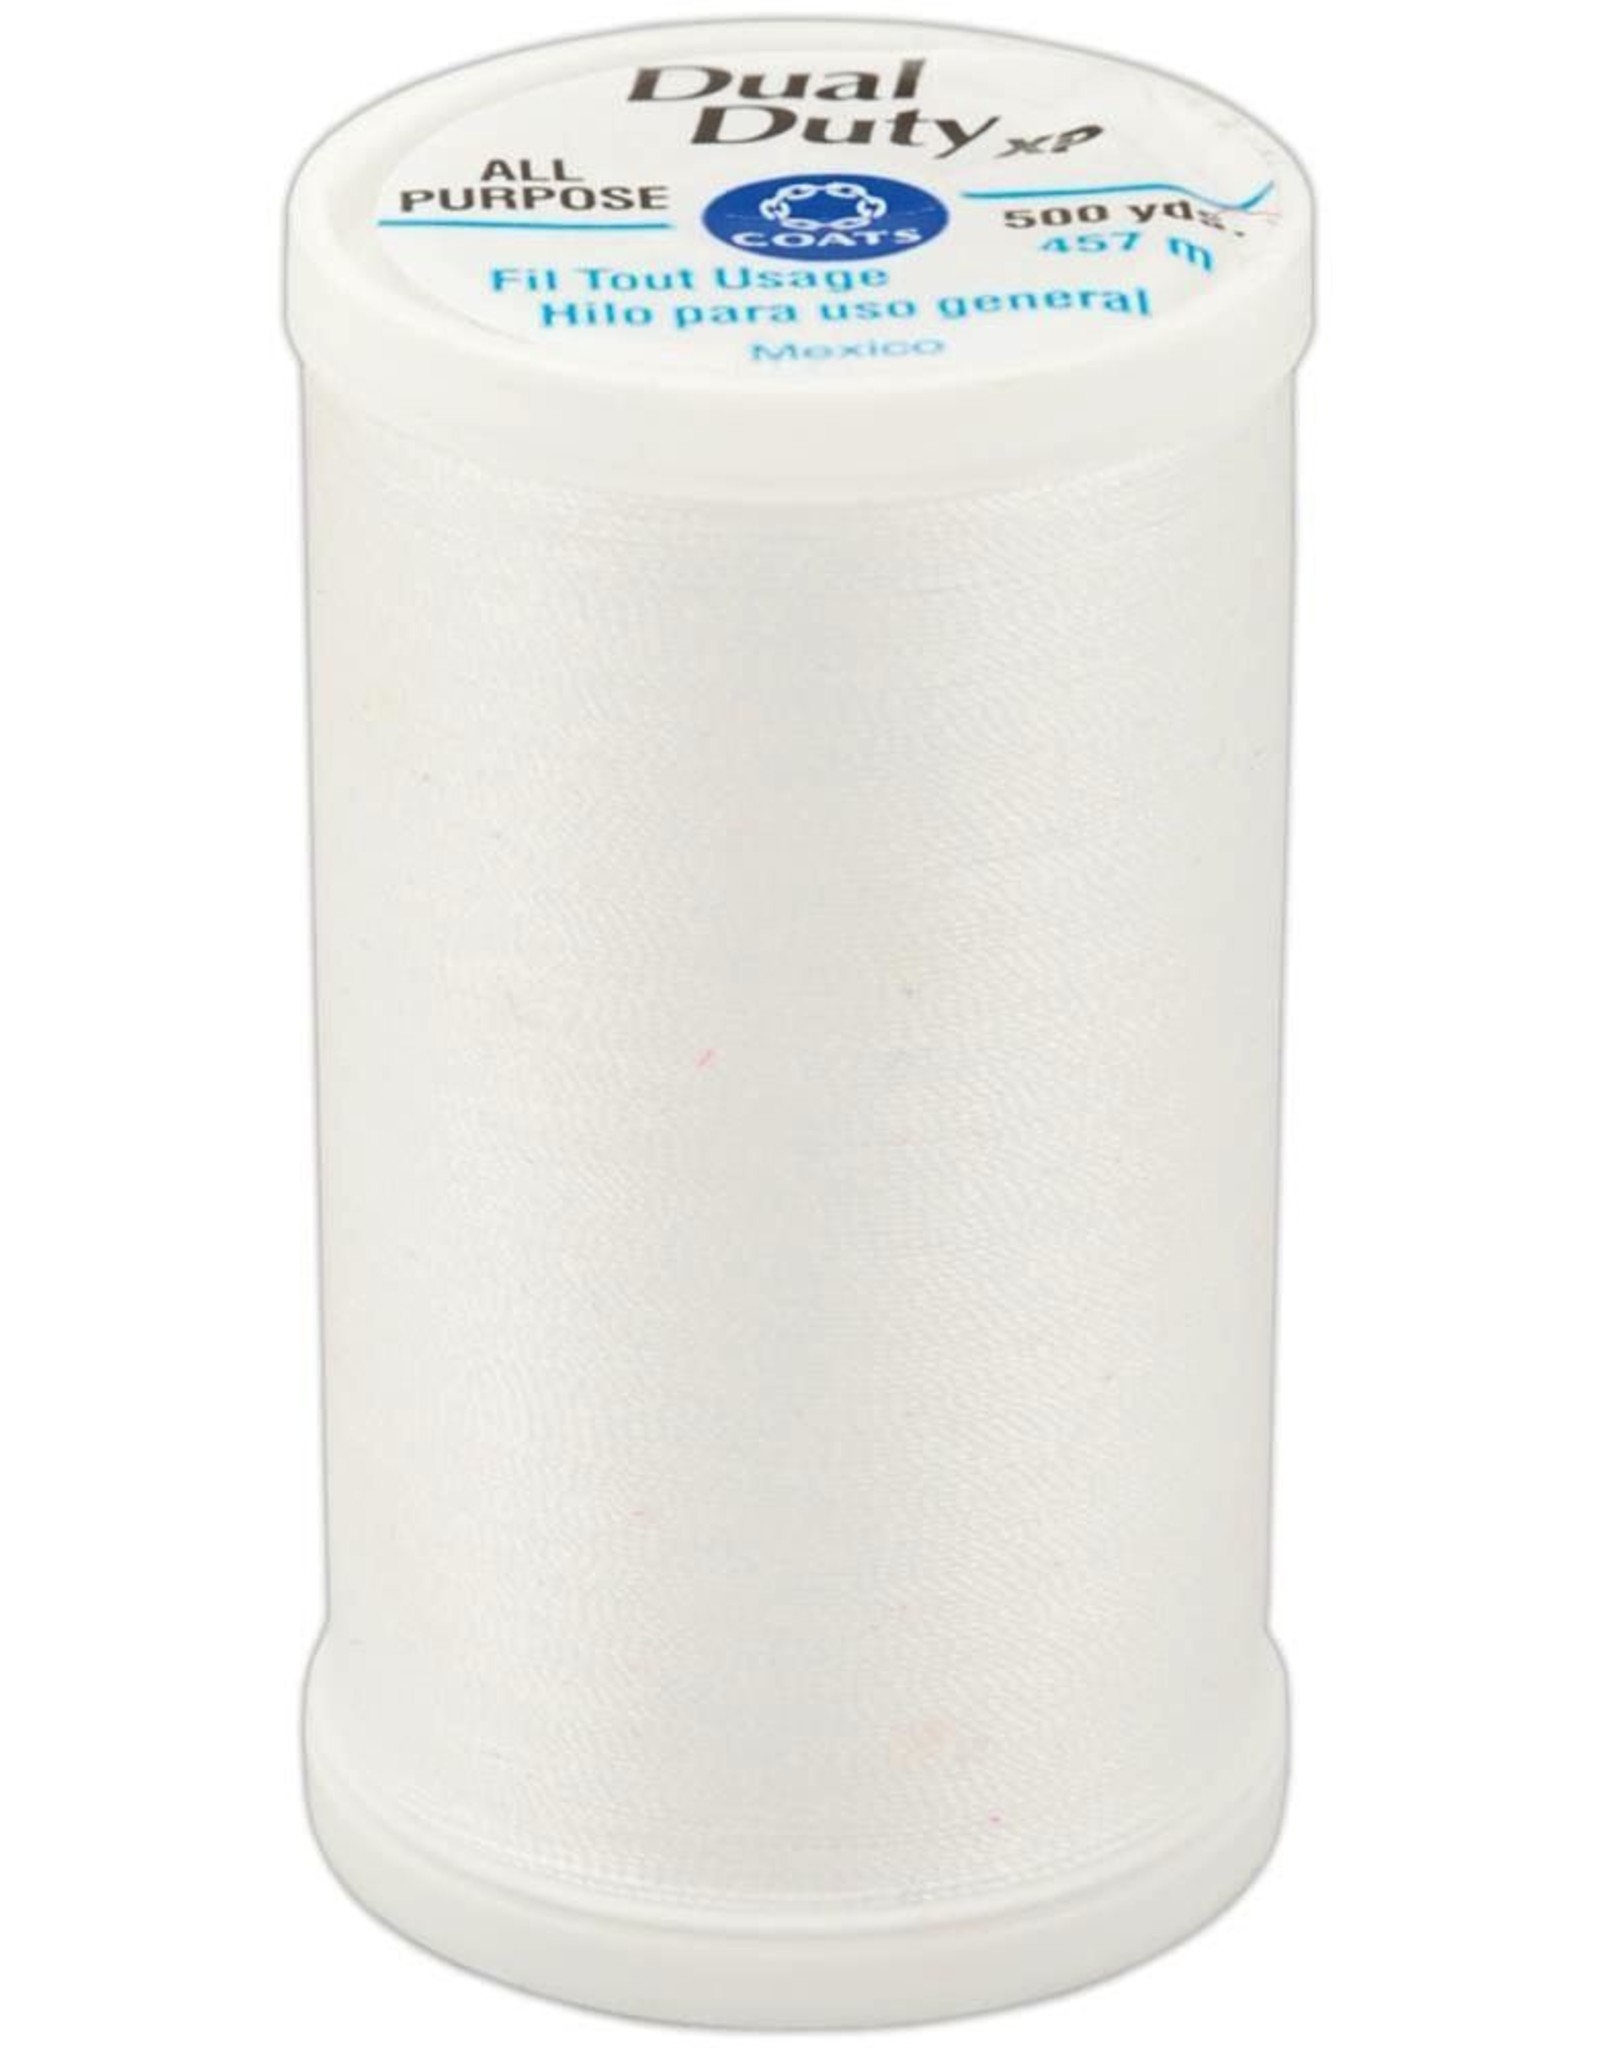 Dual Duty XP General Purpose Thread 500yd, White